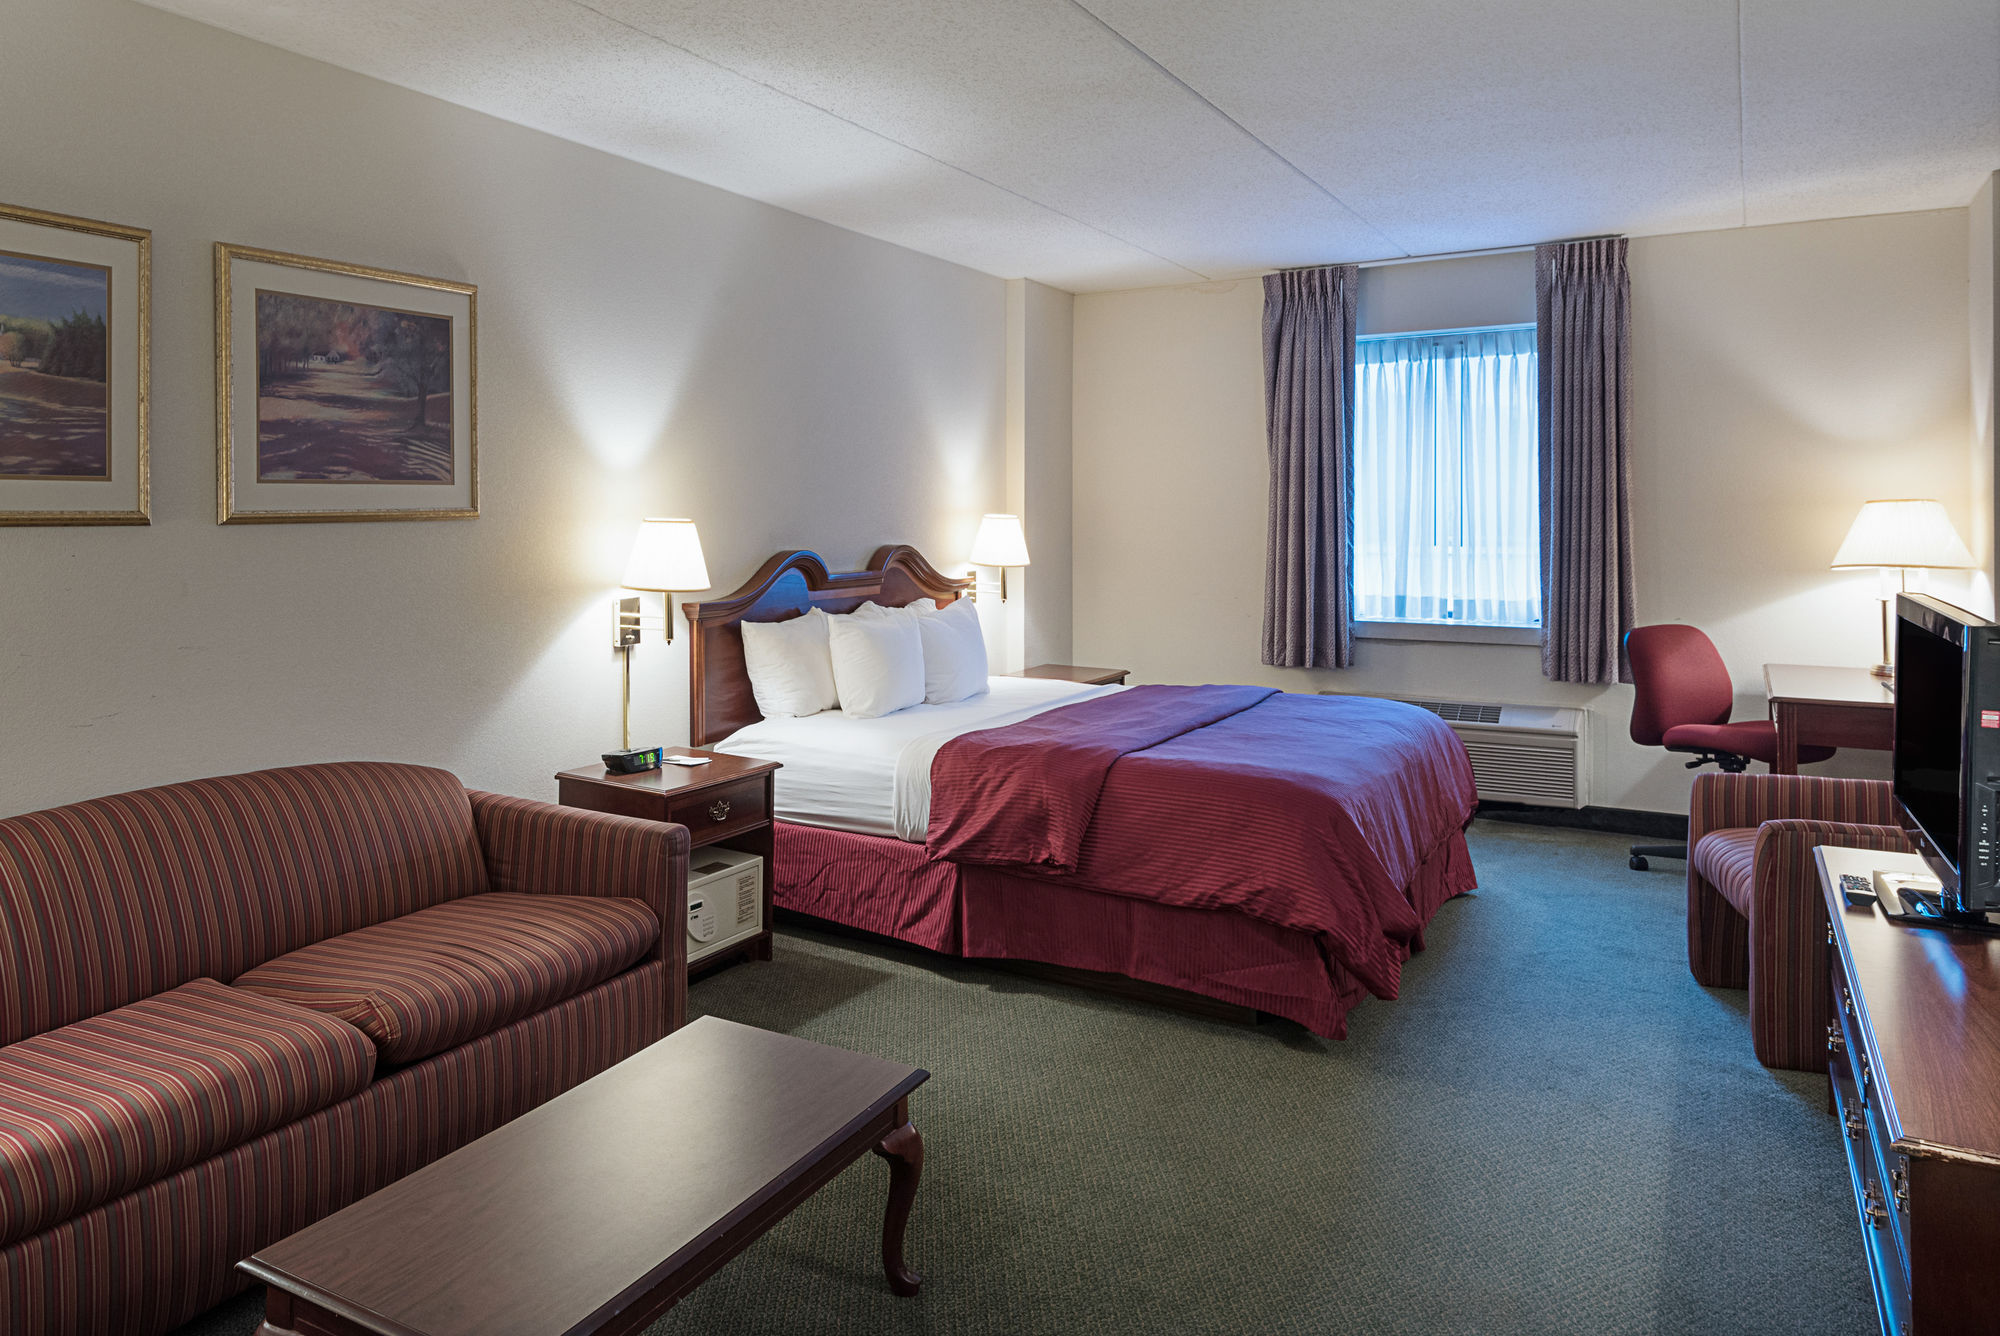 Clarion Hotel & Conference Center in Shepherdstown, WV